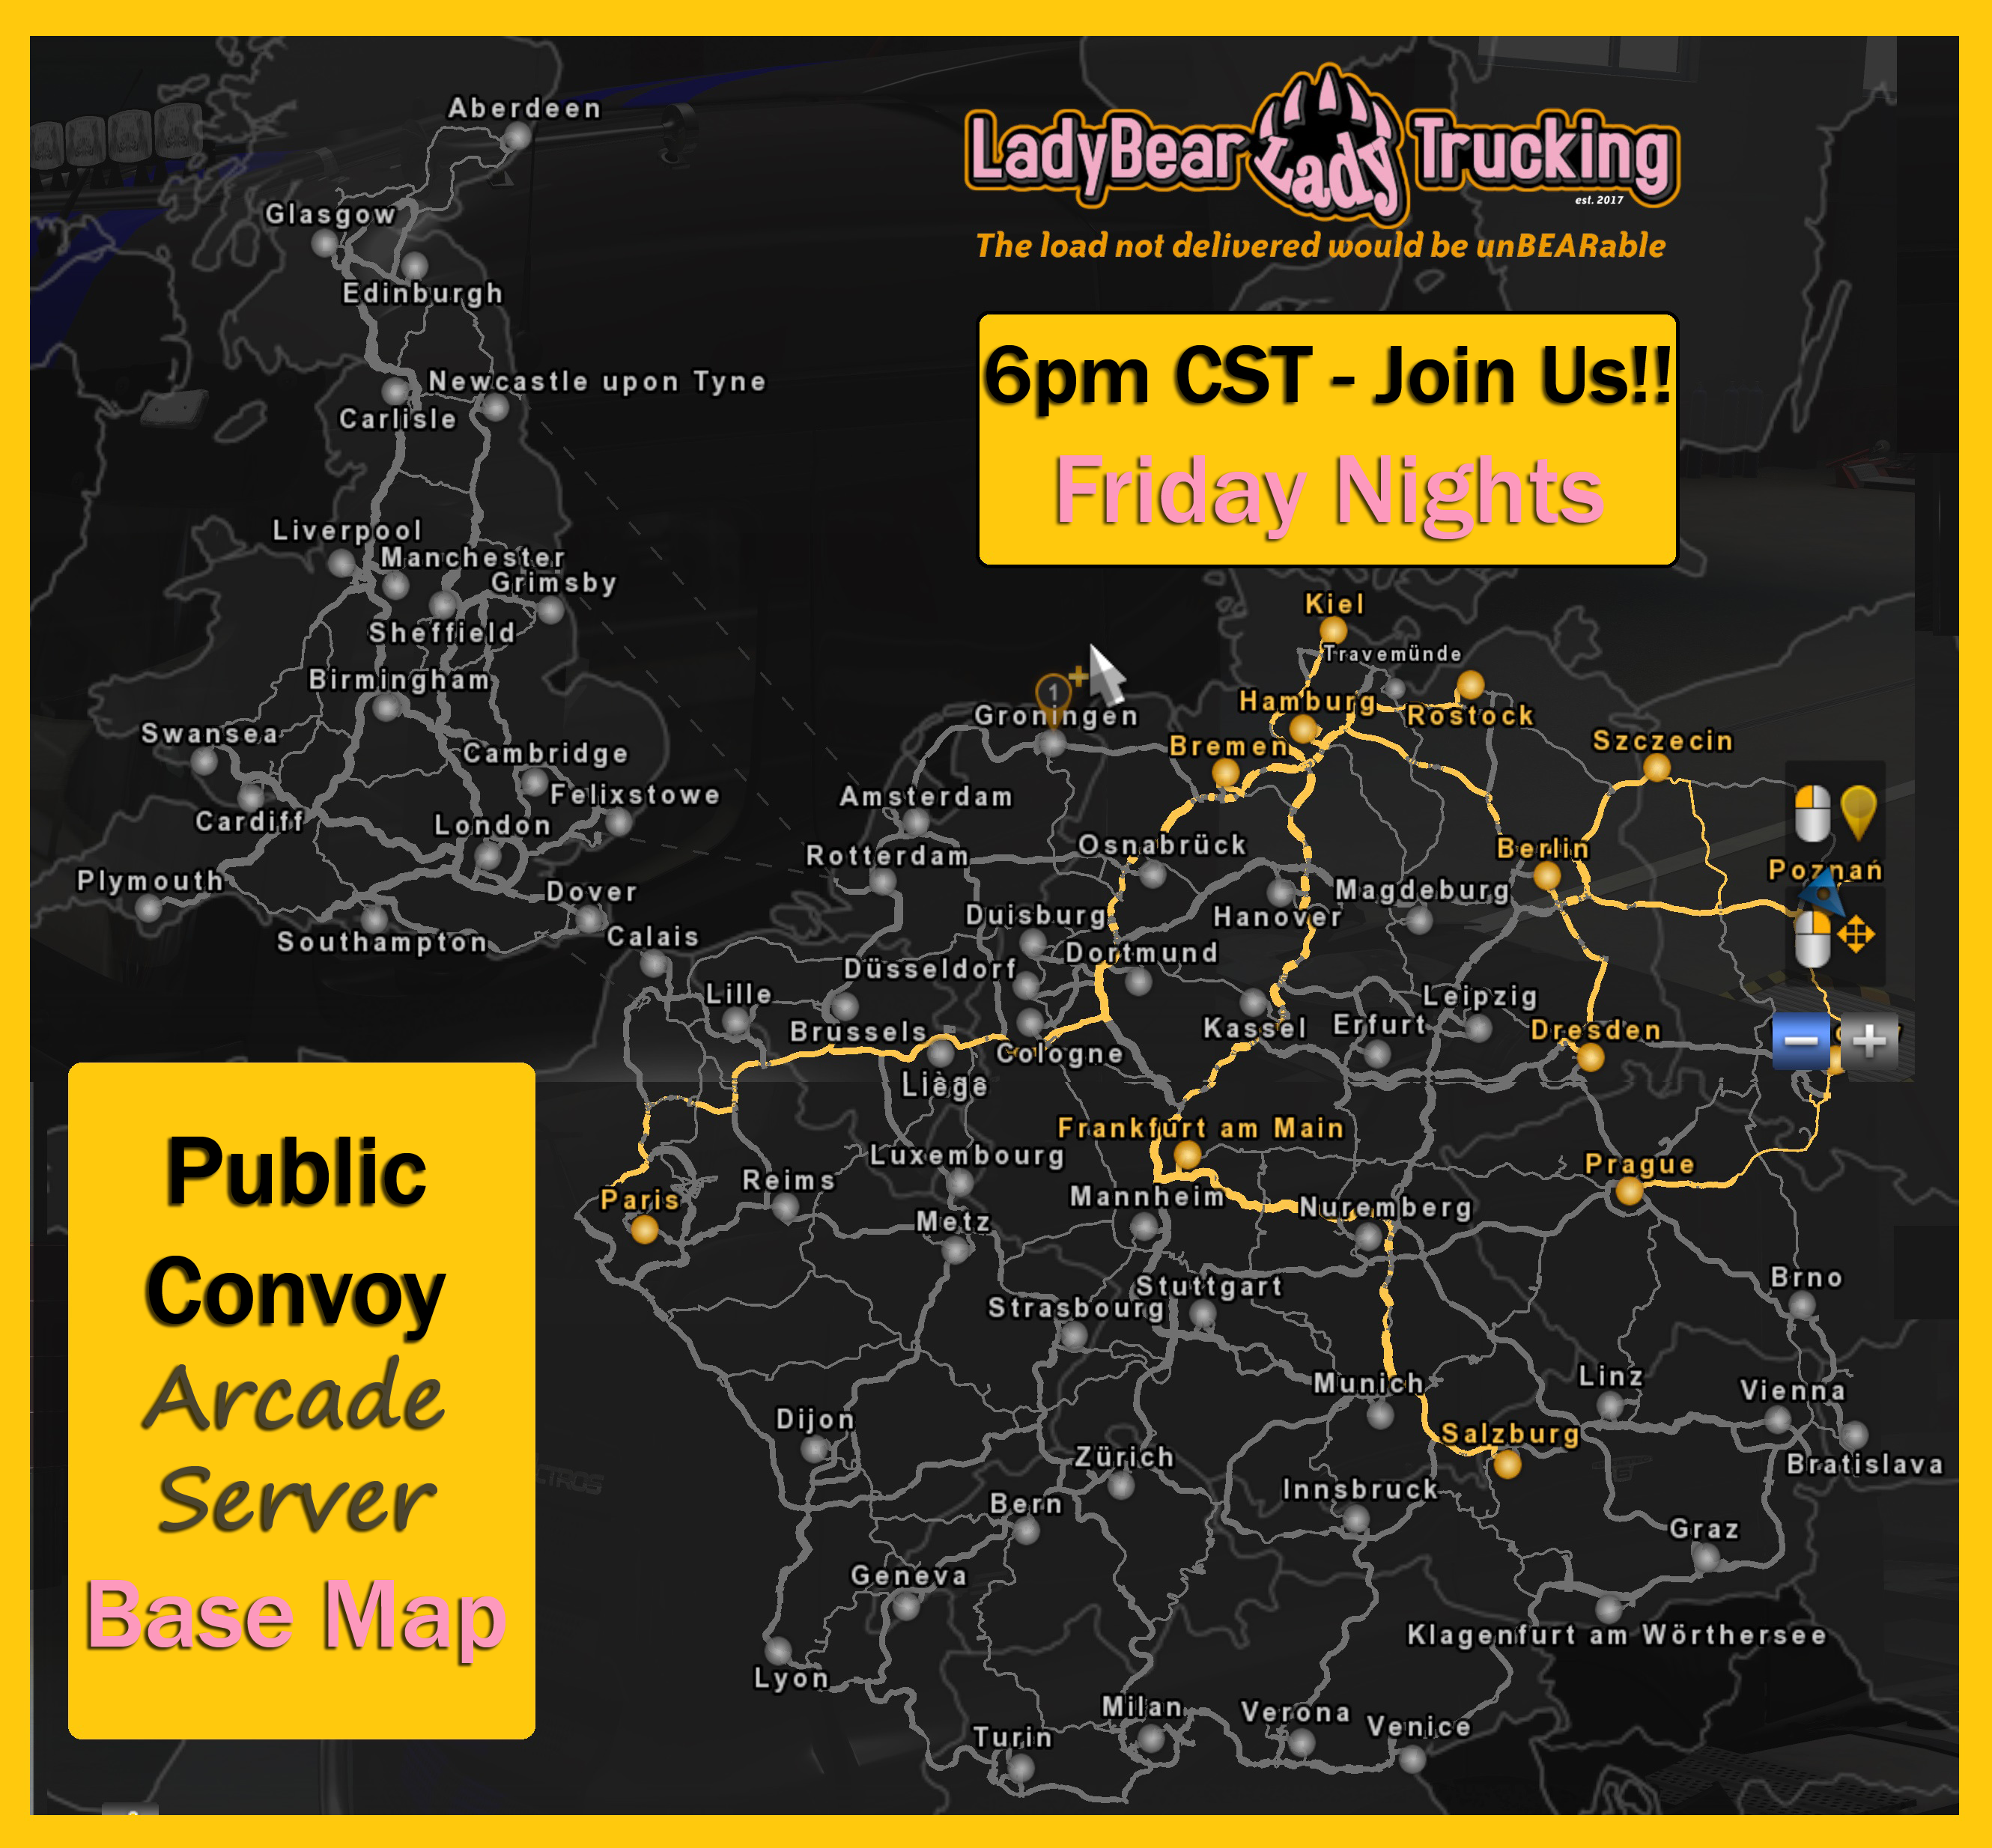 https://cdn.discordapp.com/attachments/609172747976966177/800949720402624522/ets2_finished_friday_night_base_map.png